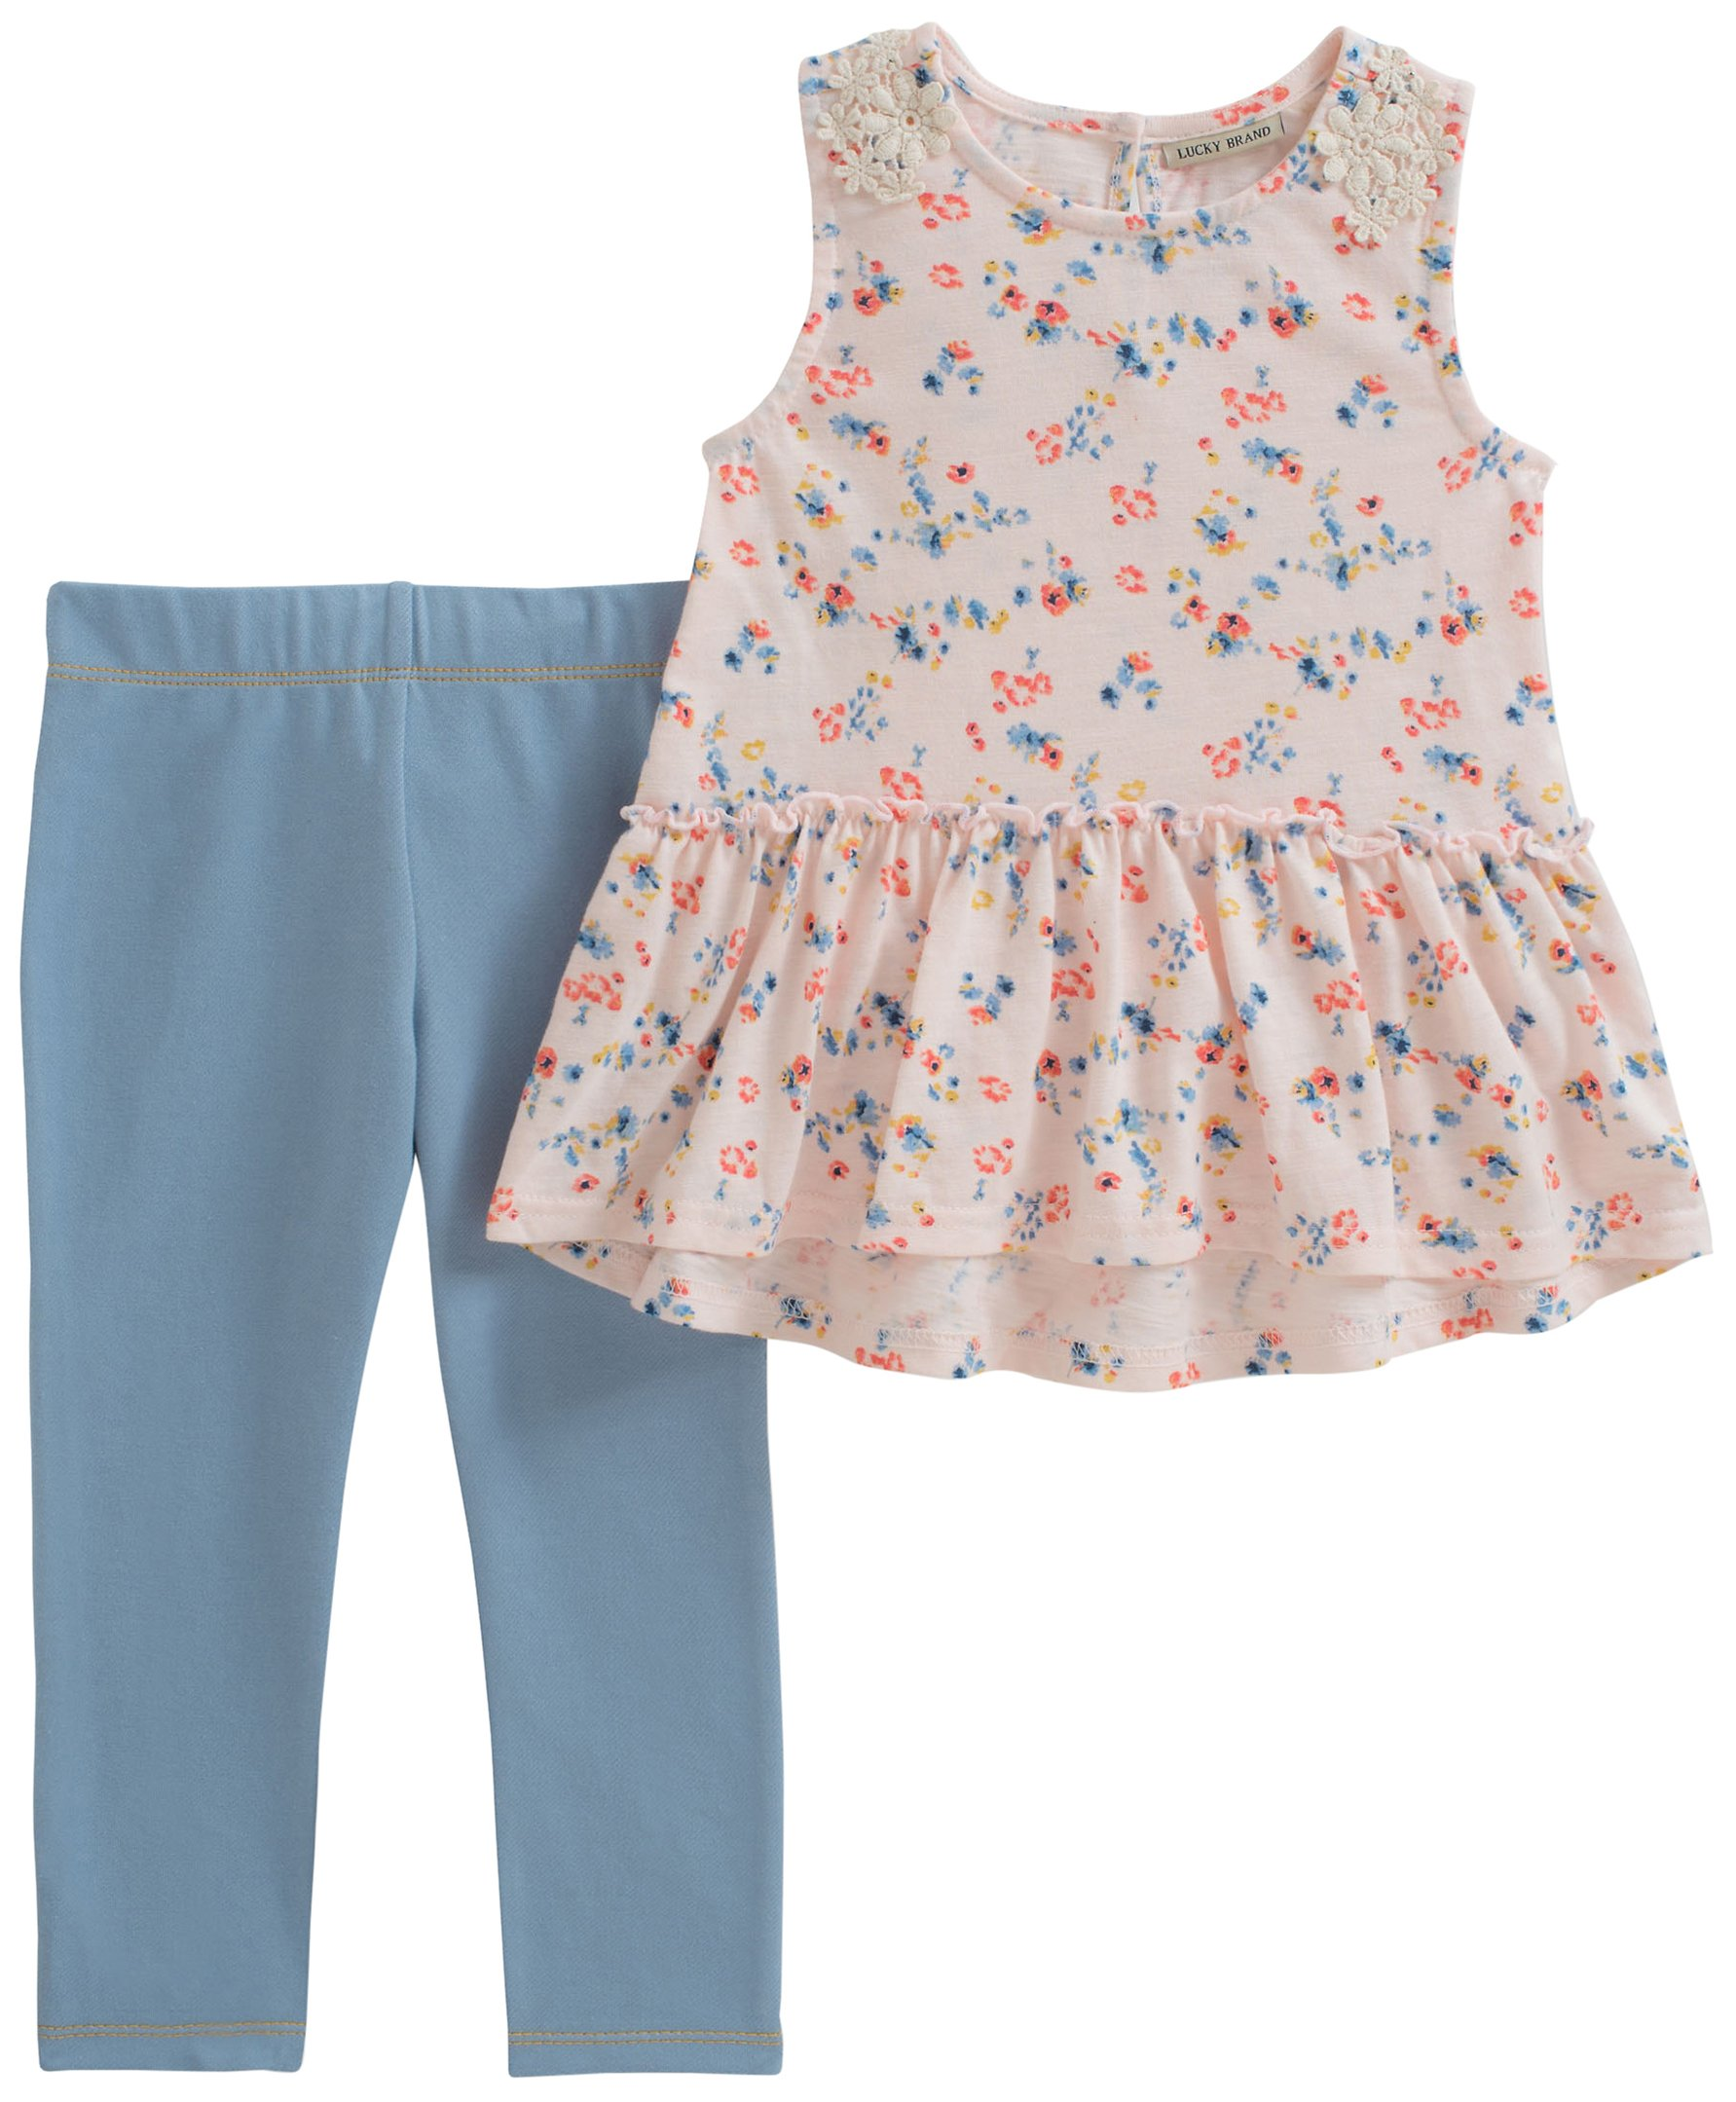 Lucky Brand Little Girls' Pants Set, Print/Light Blue, 5